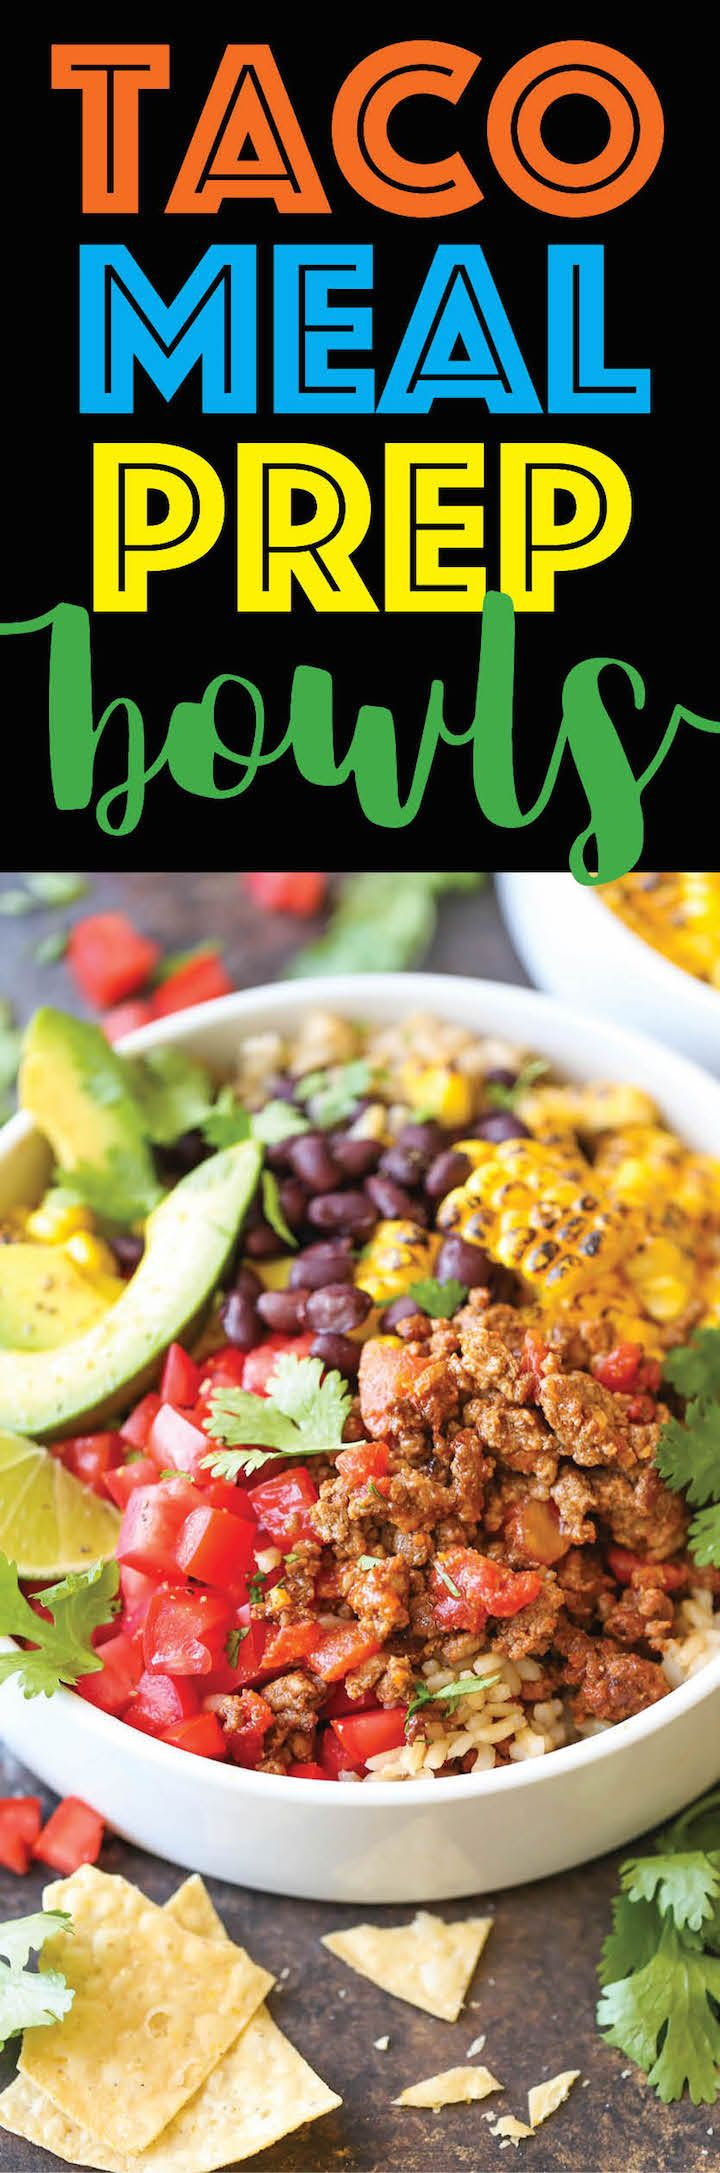 Taco Meal Prep Bowls - Meal prep for the entire week with these healthy Mexican bowls. This saves you money, time, calories - you honestly can't beat that!